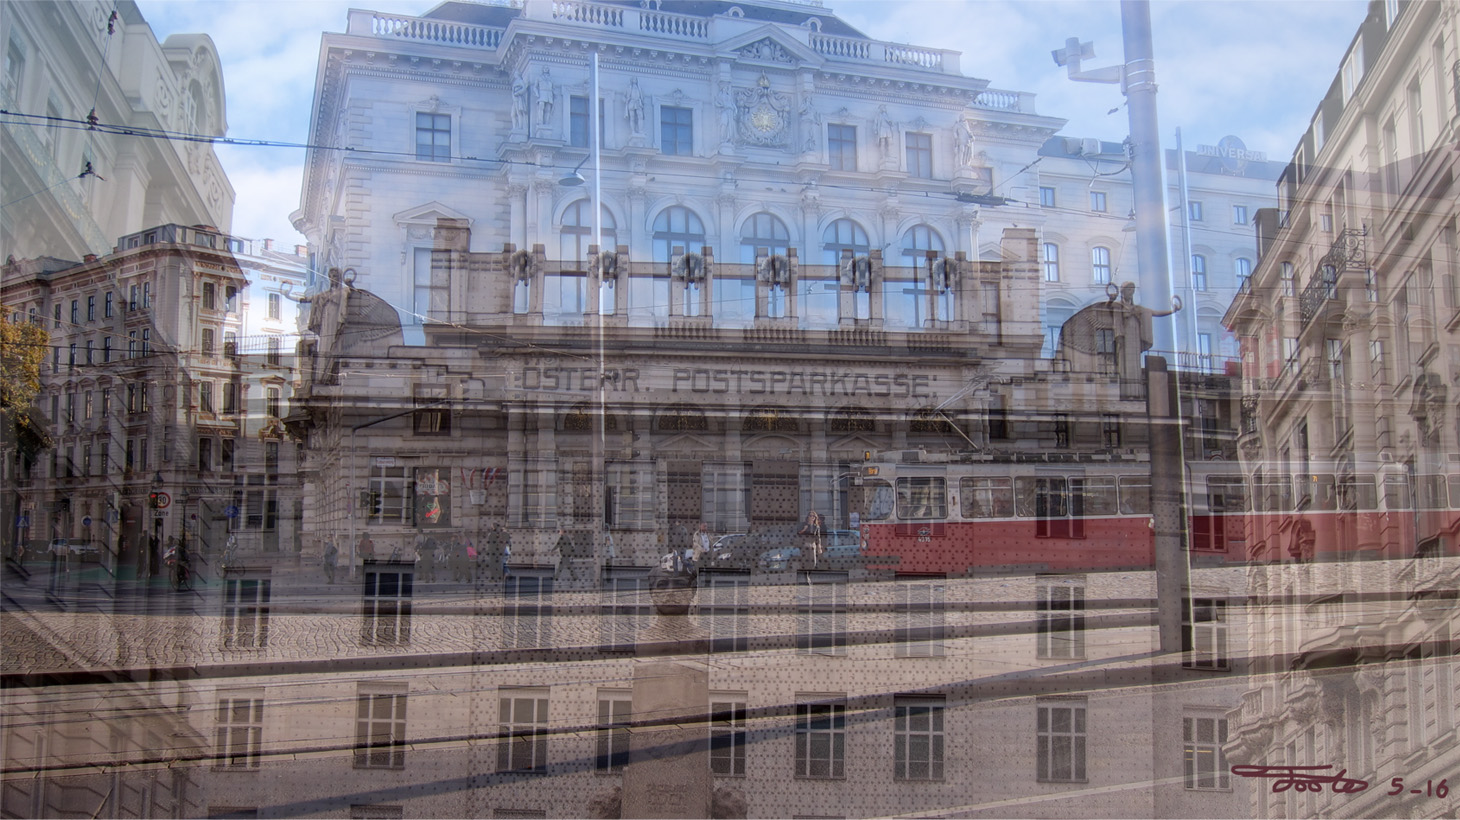 """""""Postparkasse."""" - Photo Overlay. 2016. Vienna.   """" The Postparkasse is a famous modernist building designed by Otto Wagner. The building itself is very striking in person and upon seeing it, I knew I had to create something with it. The building itself is the headquarters for the   Österreichische Postsparkasse, which is the Austrian Postal Savings Bank. To contrast the strong architecture of the Postparkasse, I've overlayed a typical street scene. This breaks up the angles and also adds a Ringstrasse tram."""""""